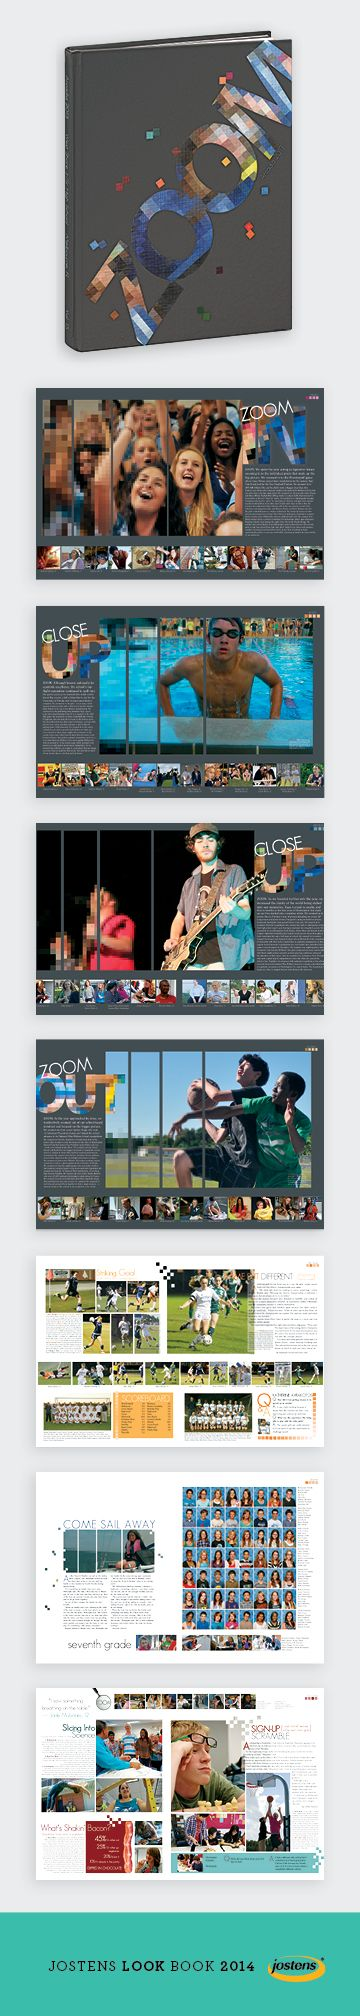 pin by jana barber on yb pinterest yearbooks yearbook ideas and